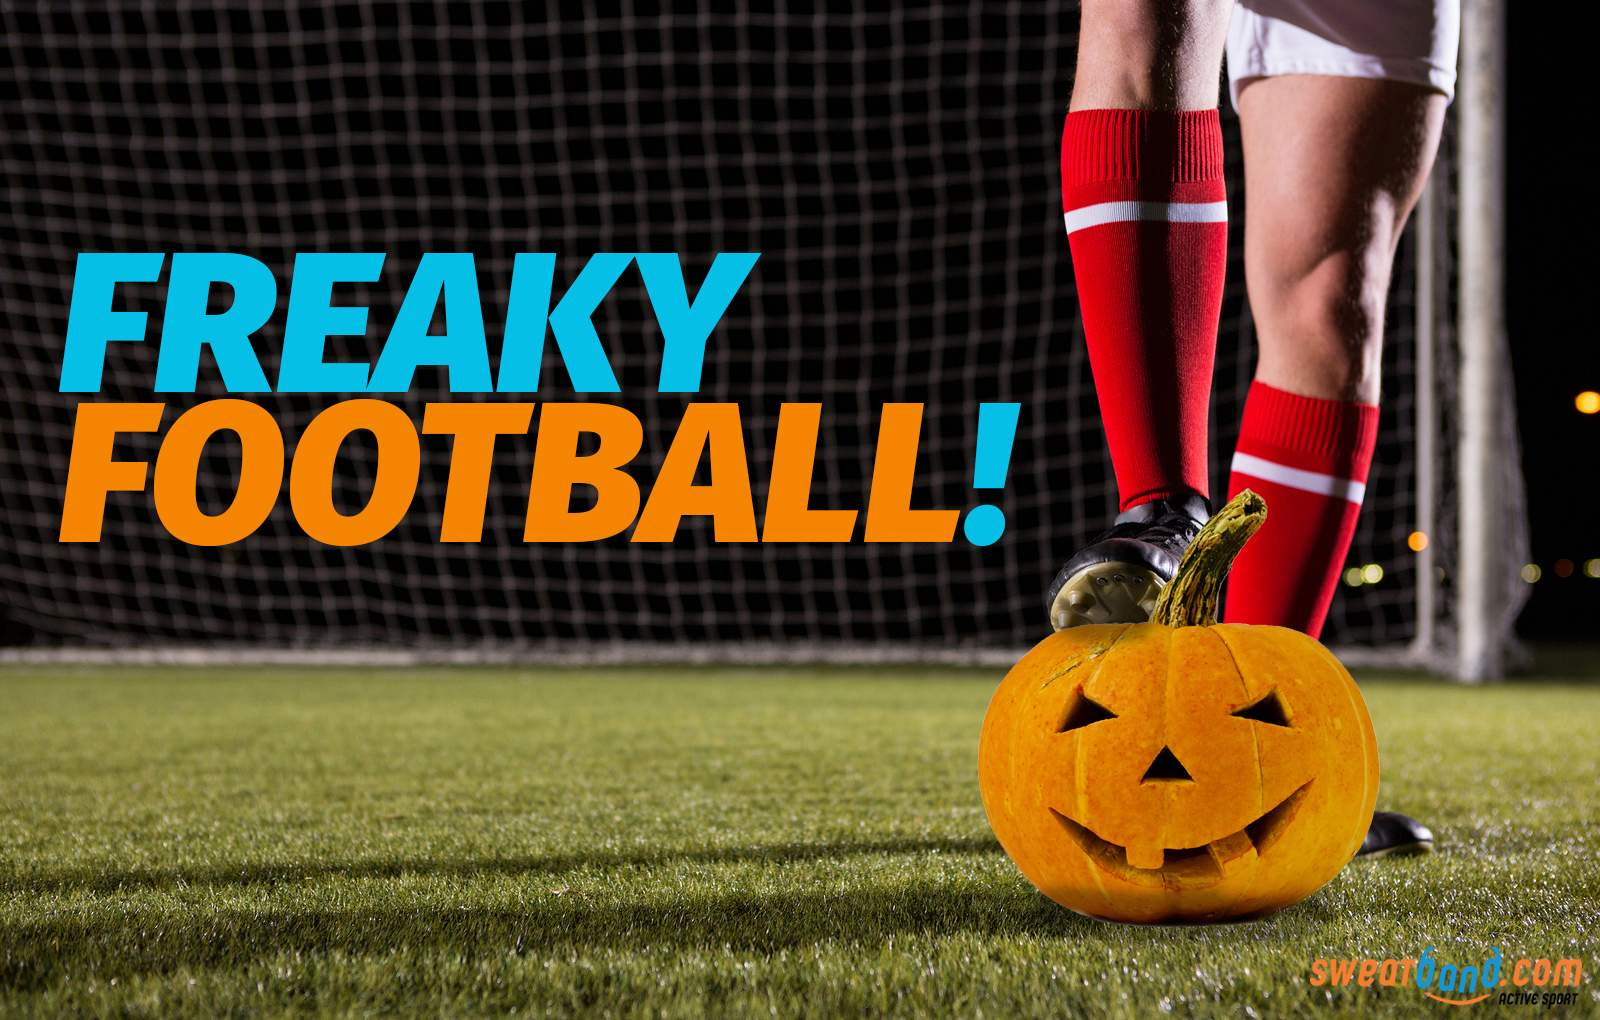 Why not give freaky football a try this Halloween?